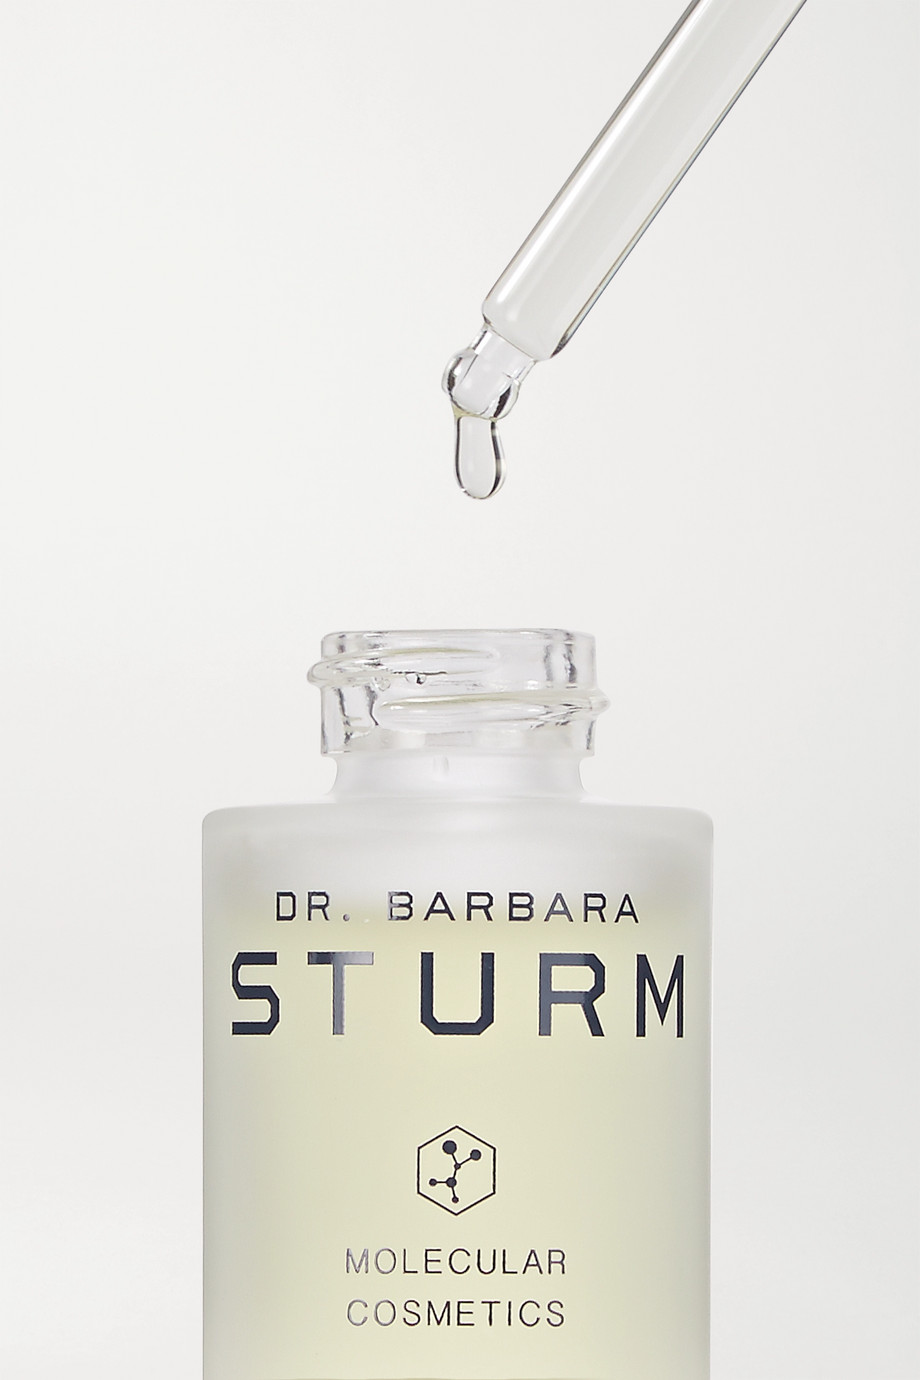 Dr. Barbara Sturm Night Serum, 30ml